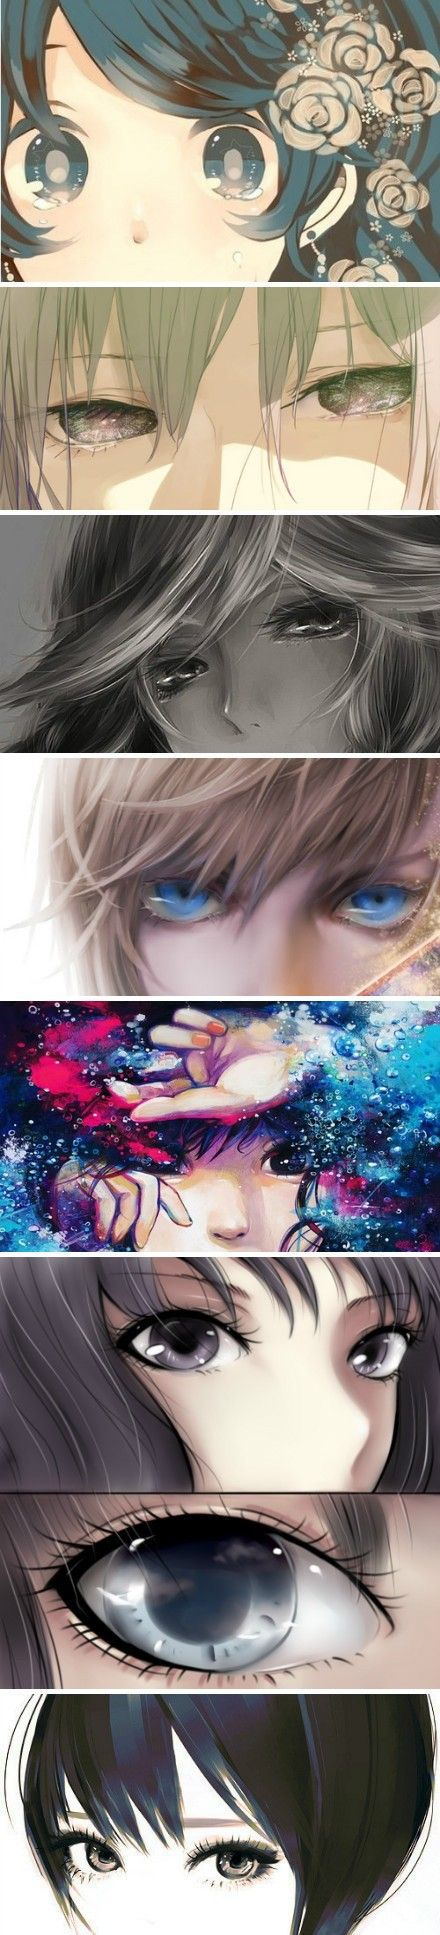 best crafts images on pinterest anime art anime guys and anime